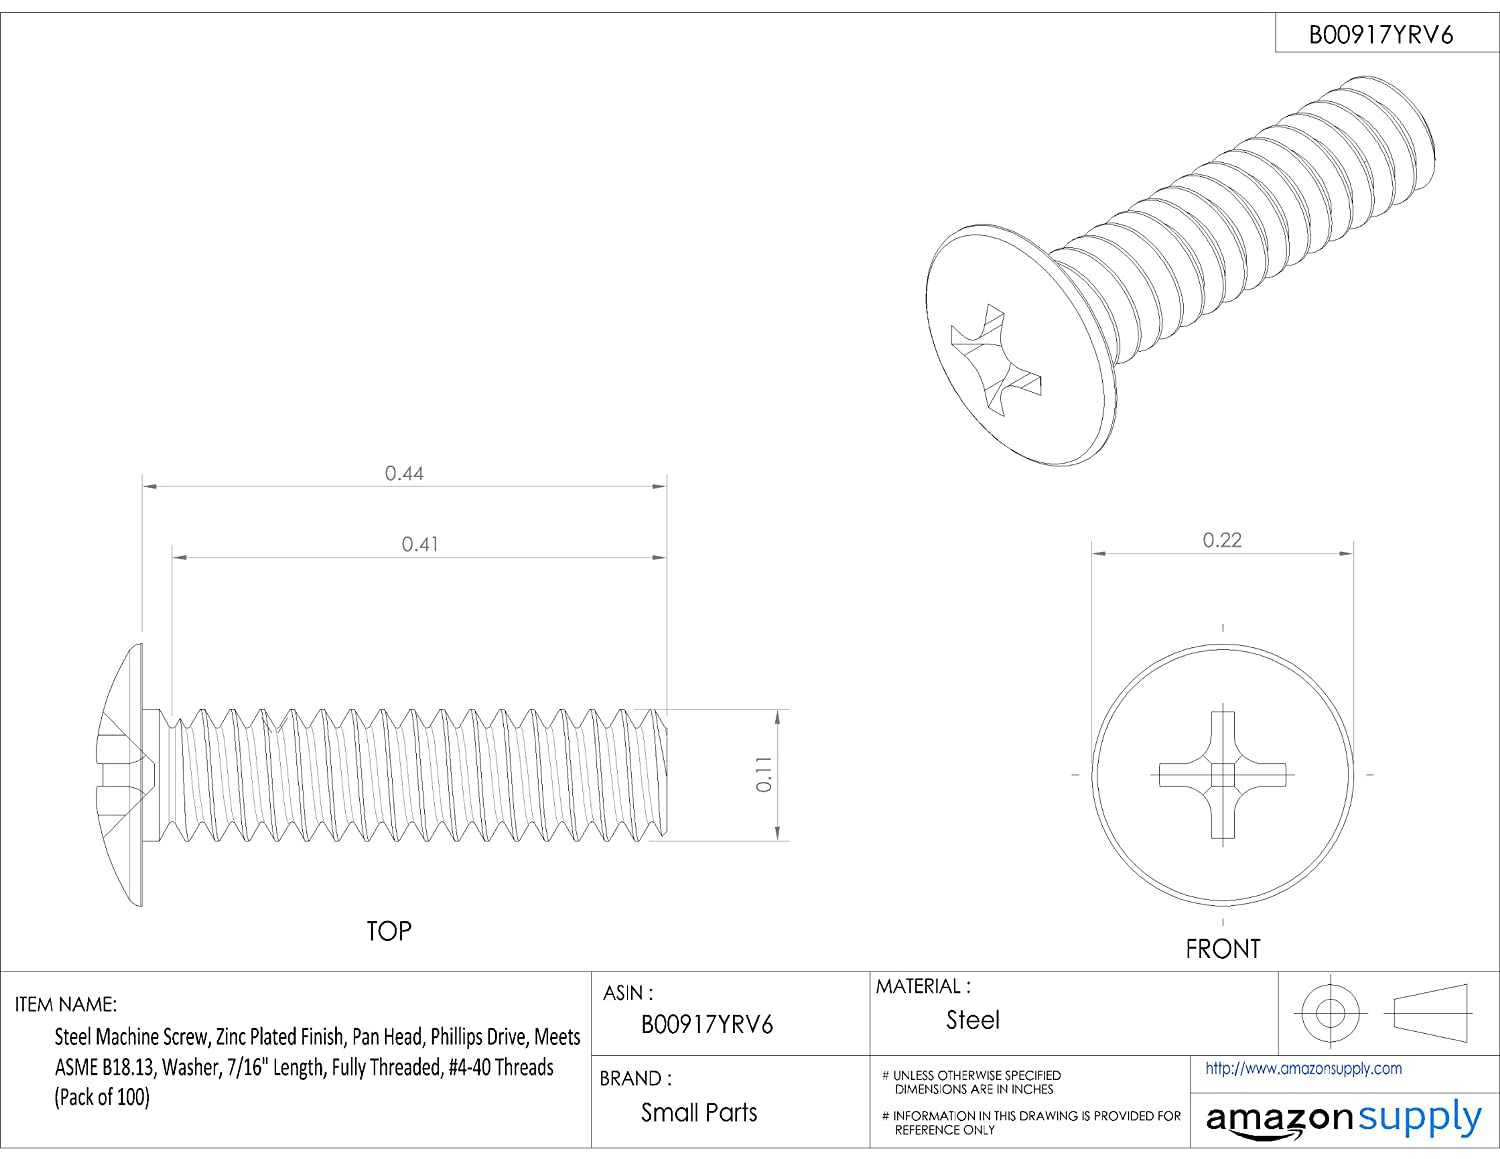 Fully Threaded Pan Head 7//16 Length Meets ASME B18.13 Internal-Tooth Lock Washer #4-40 UNC Threads Pack of 100 Phillips Drive Zinc Plated Finish Steel Machine Screw